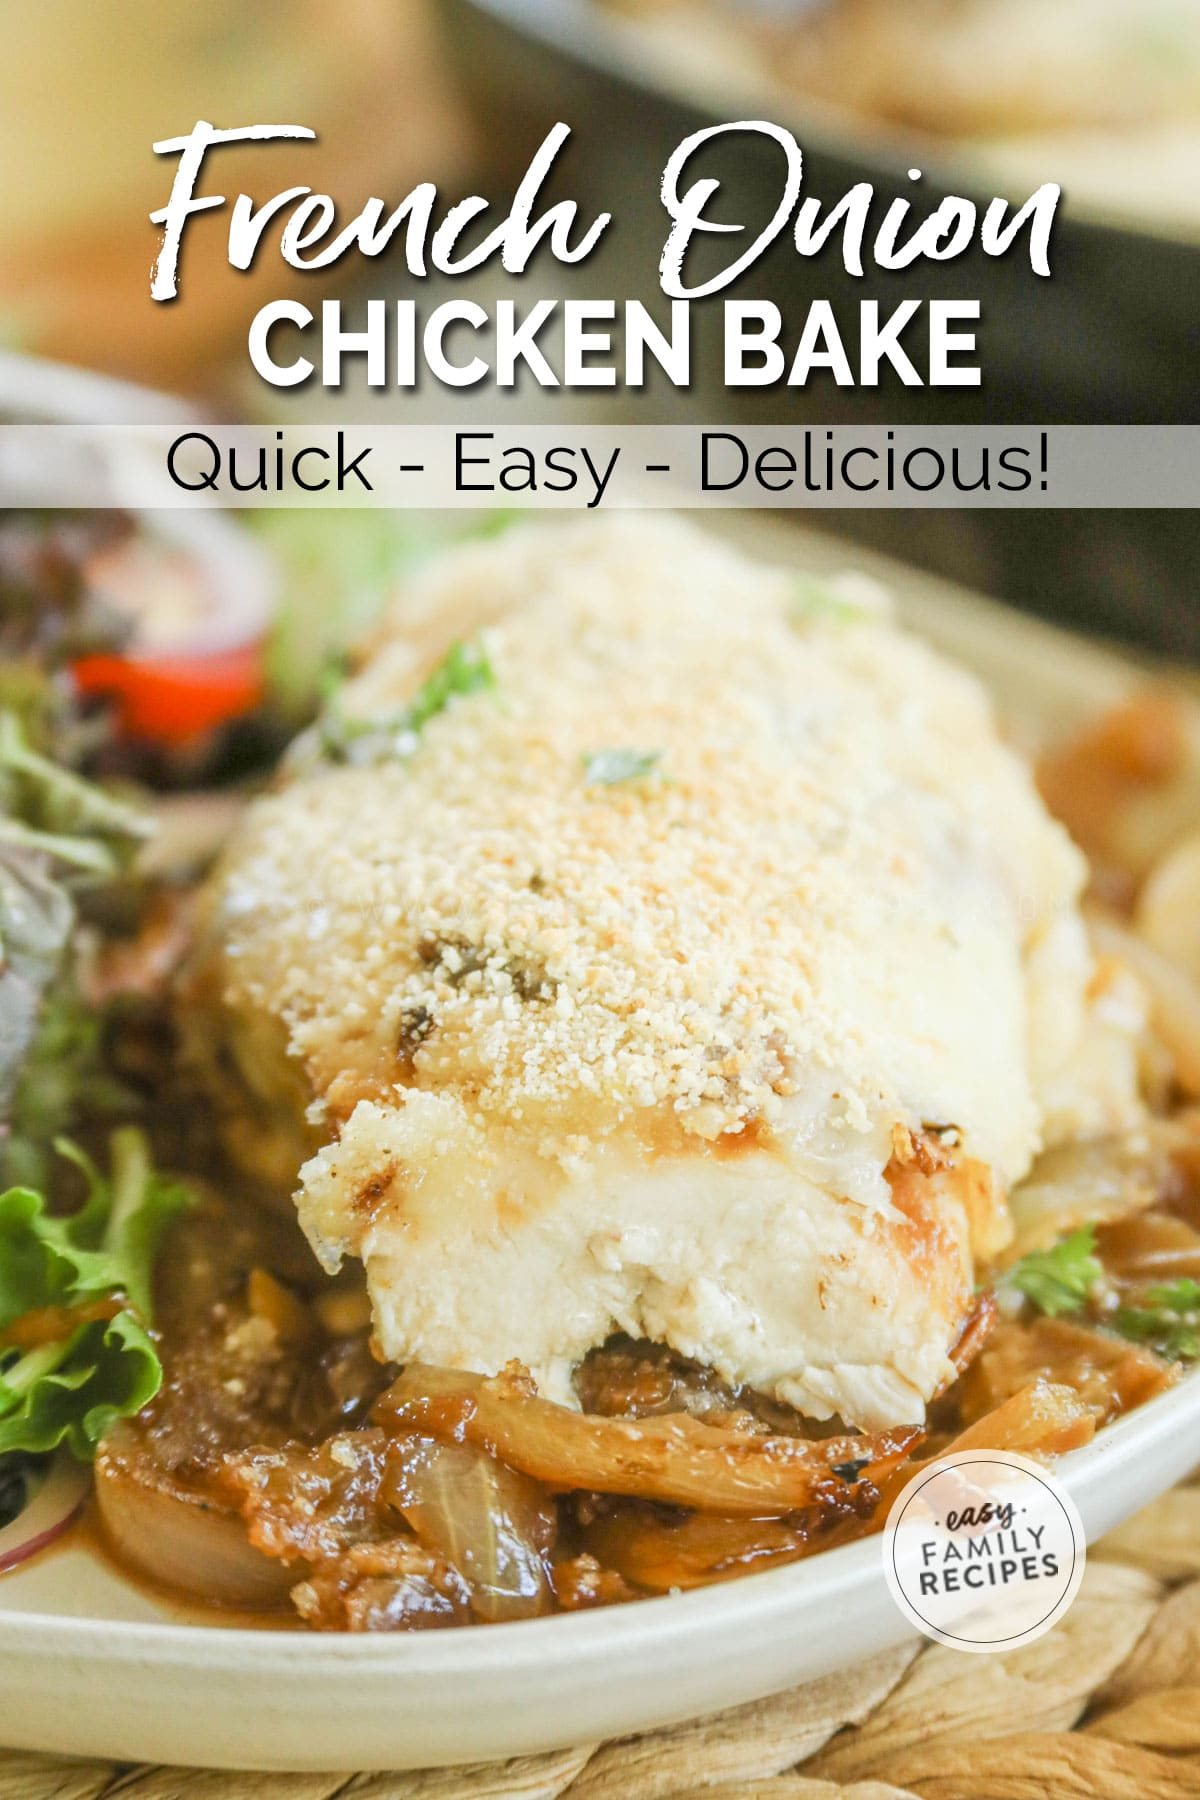 French Onion Chicken toped with toasted bread crumbs and garnished with parsley, then served with a side salad